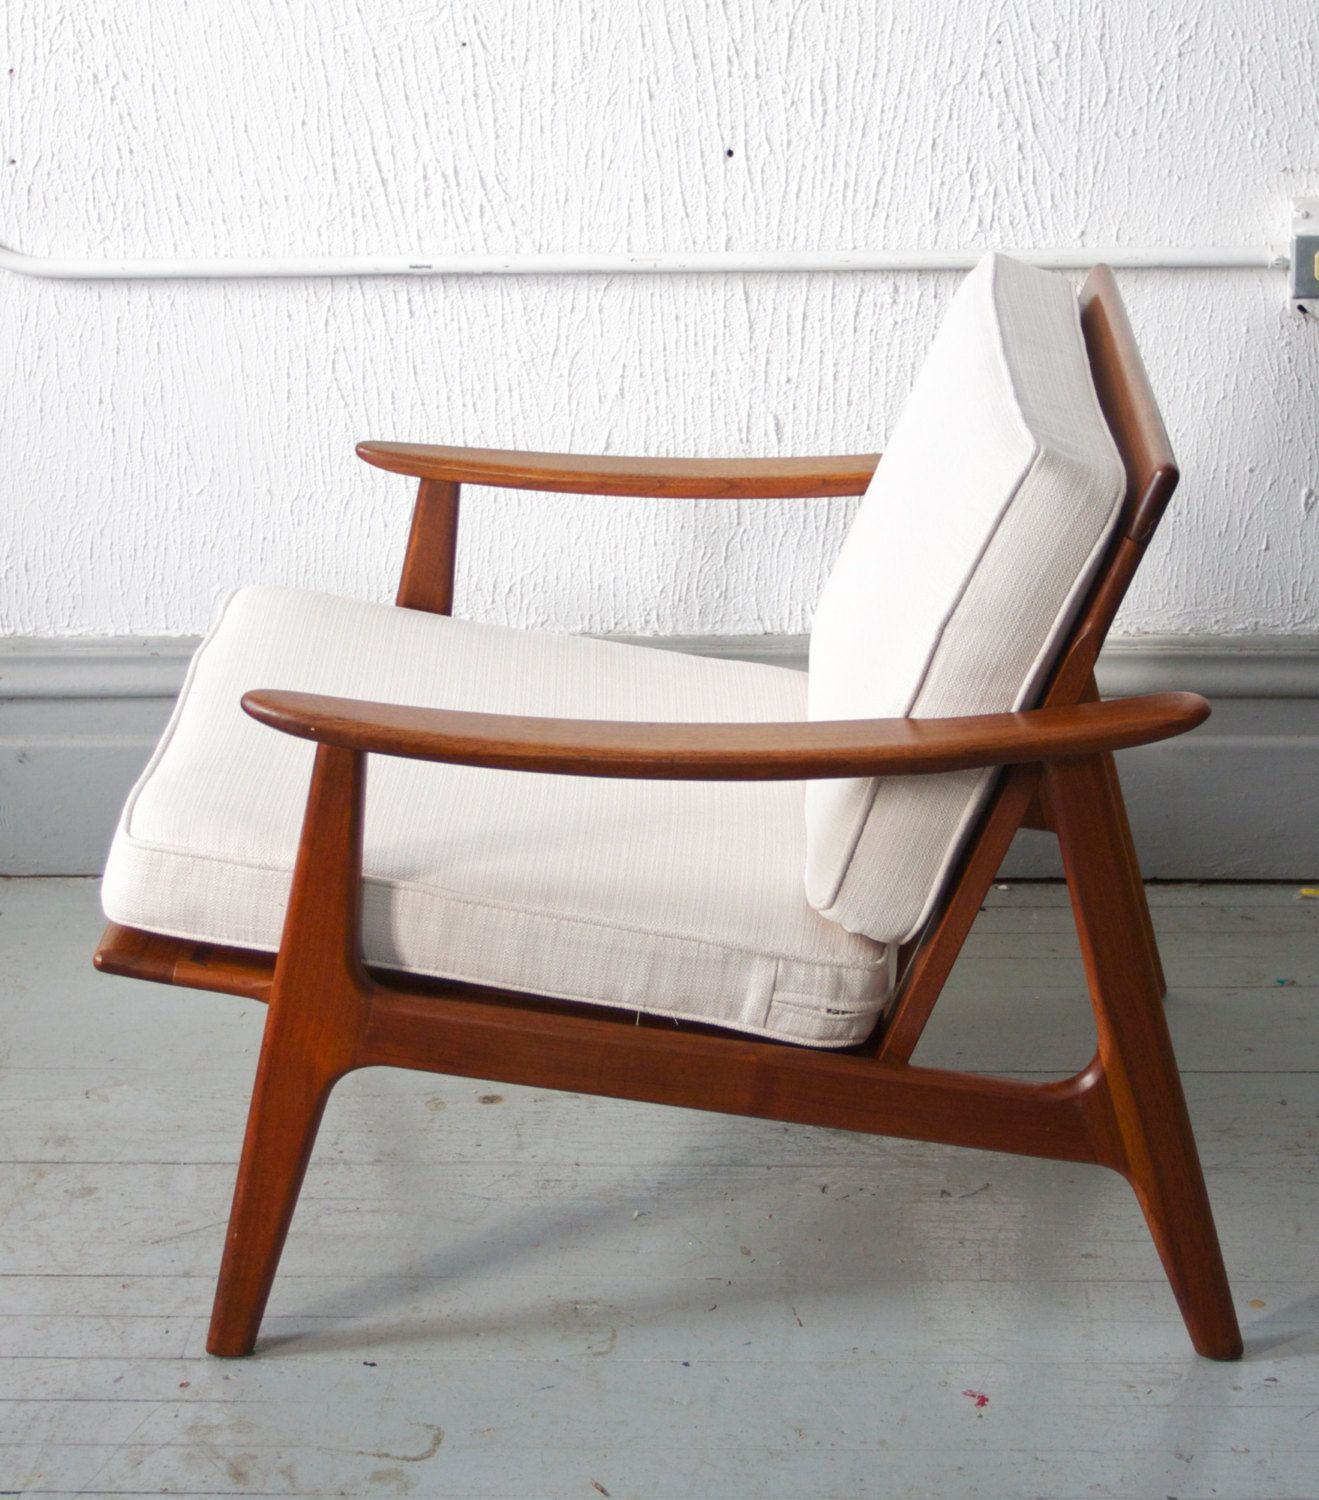 paper will and creations mid vintage wegner chair whose teak articles by made always johannes hansen scandinavian were circa hans model these century in style two chairs cord furniture design be ash signed peacock c modern pioneers